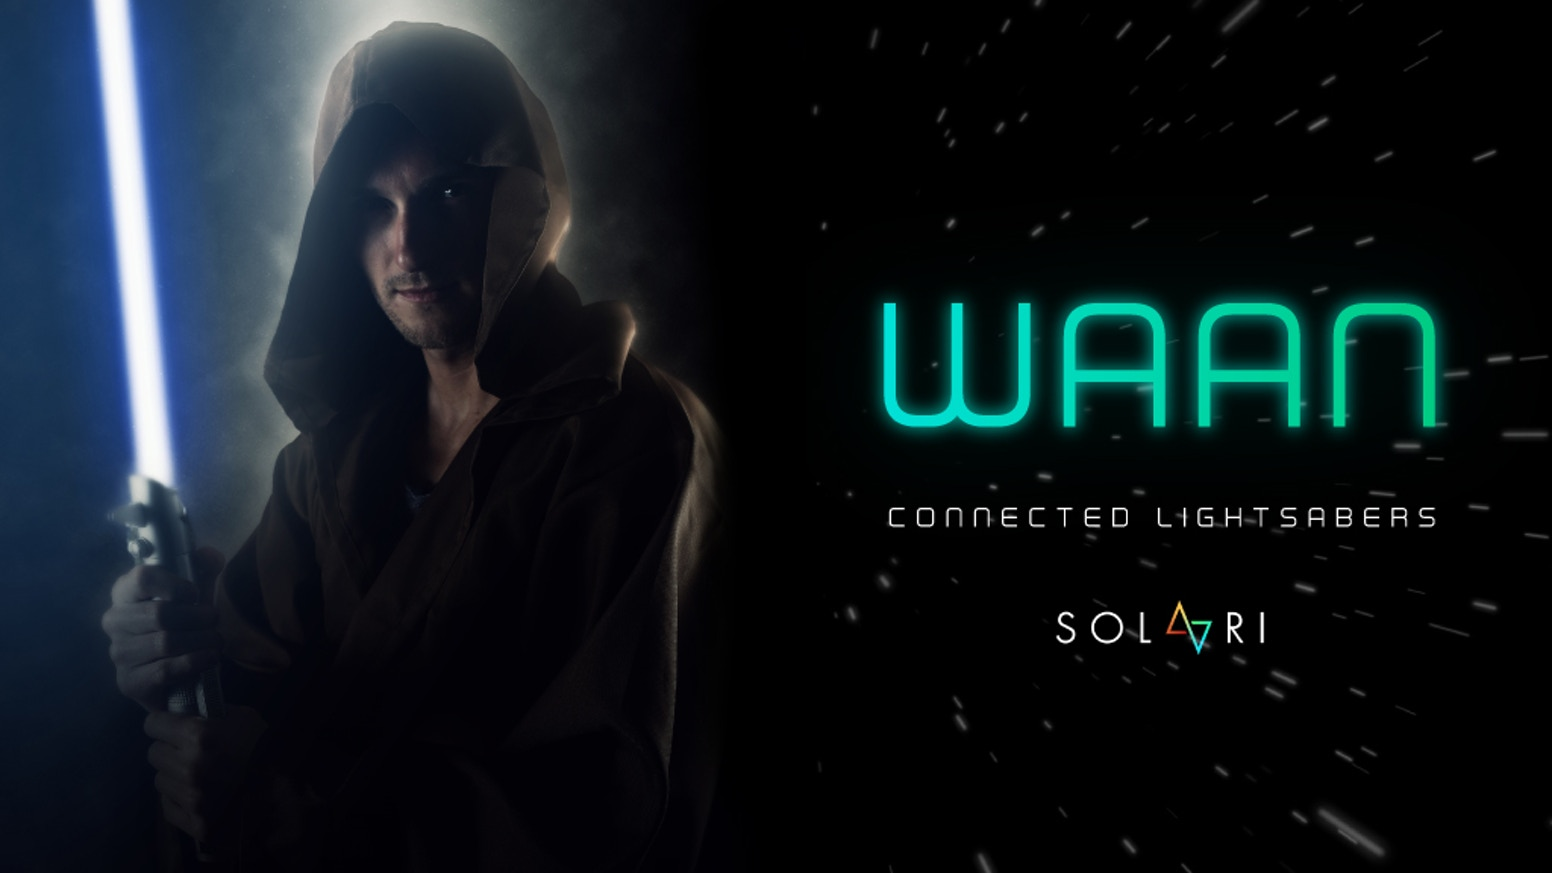 Thanks to all our contributors for their support! This adventure has only just begun. Follow us here on Kickstarter, on our website or on social channels to participate in the development of the Solaari WANN lightsabers!